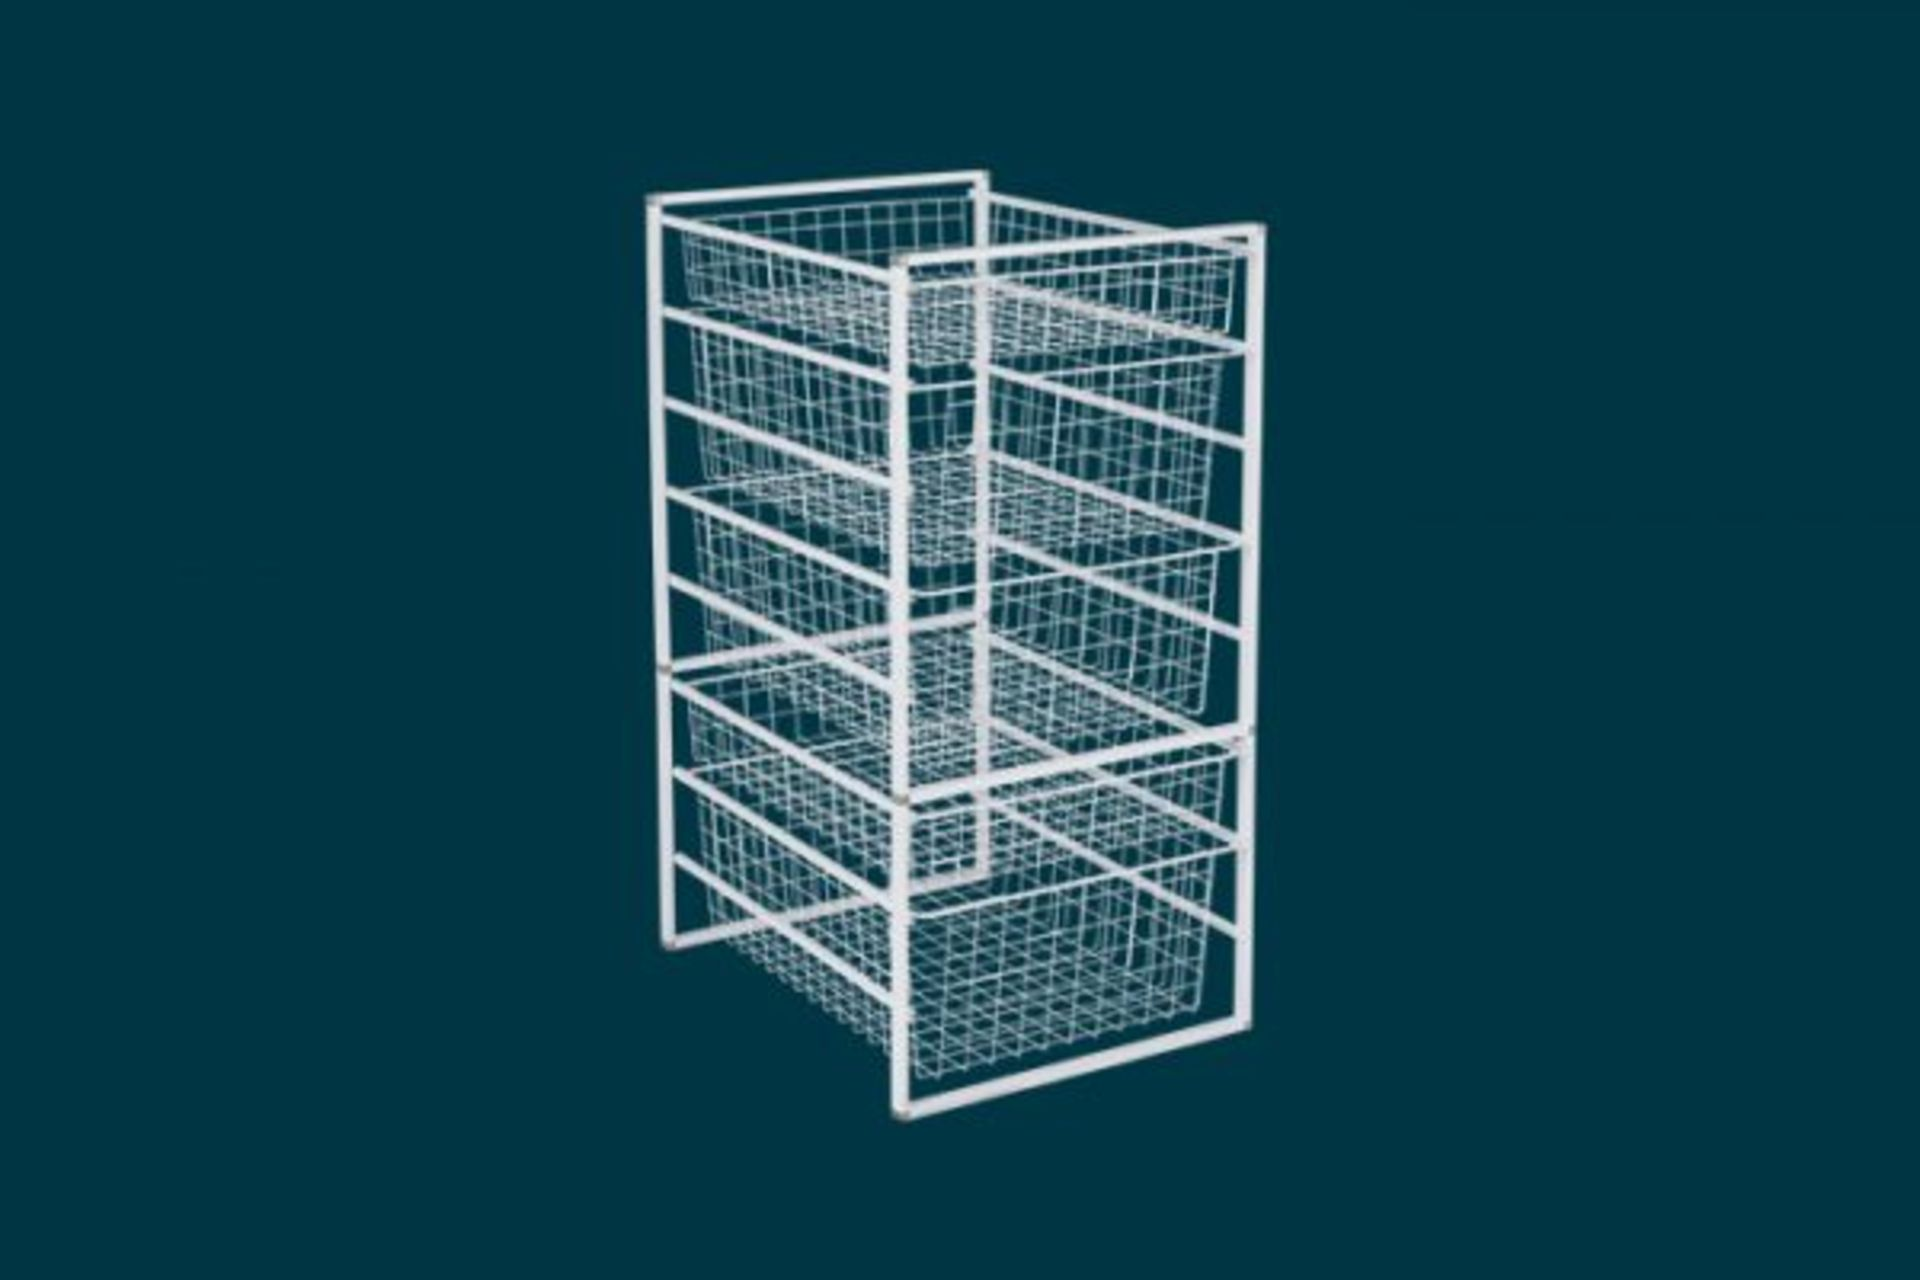 (P2) 2x Flexi Storage Home Solutions White. 8 Runner Basket Kit. (H850x D545x W436mm) - Image 2 of 3